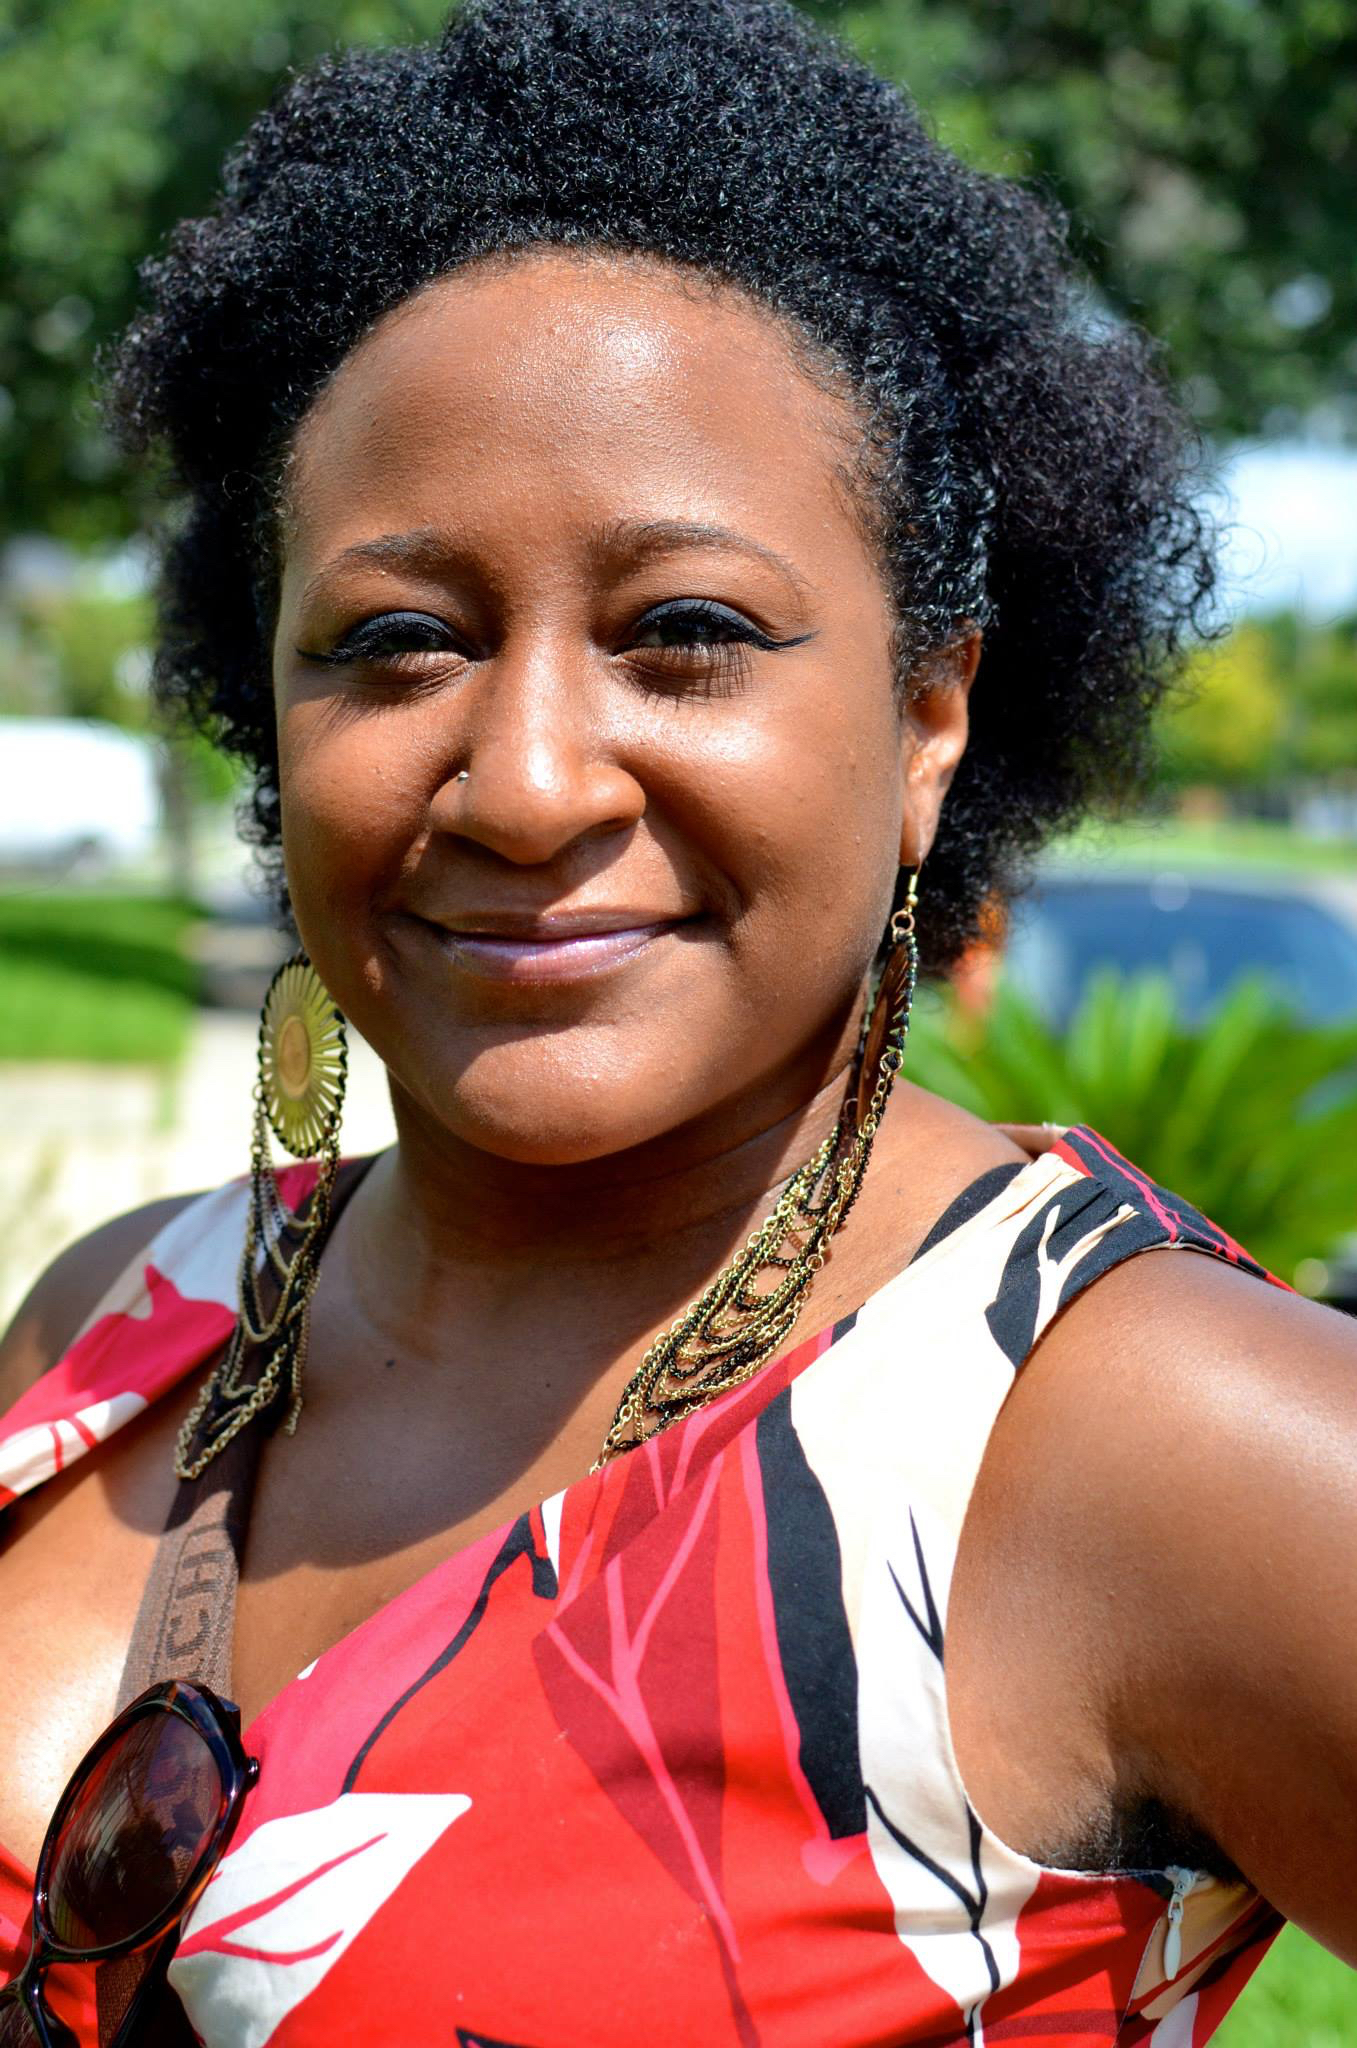 Nakia Brown - Director of Communications - Baltimore, MD (Independent Contractor)